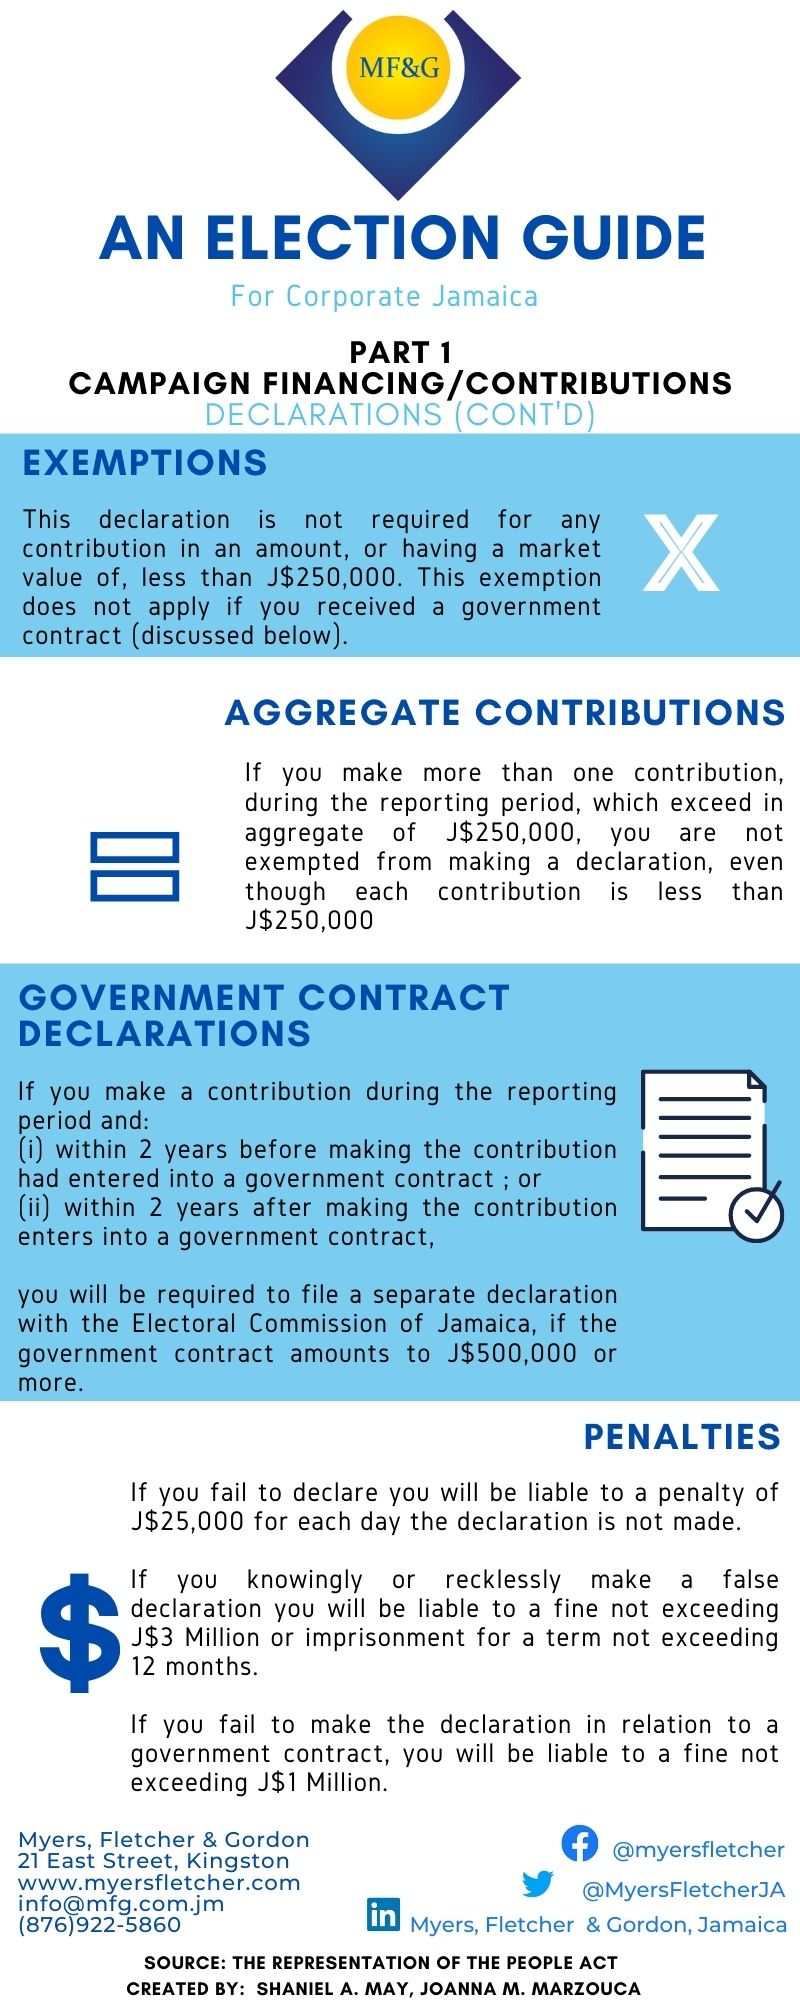 An Election Guide for Corporate Jamaica Part 1 (2).jpg